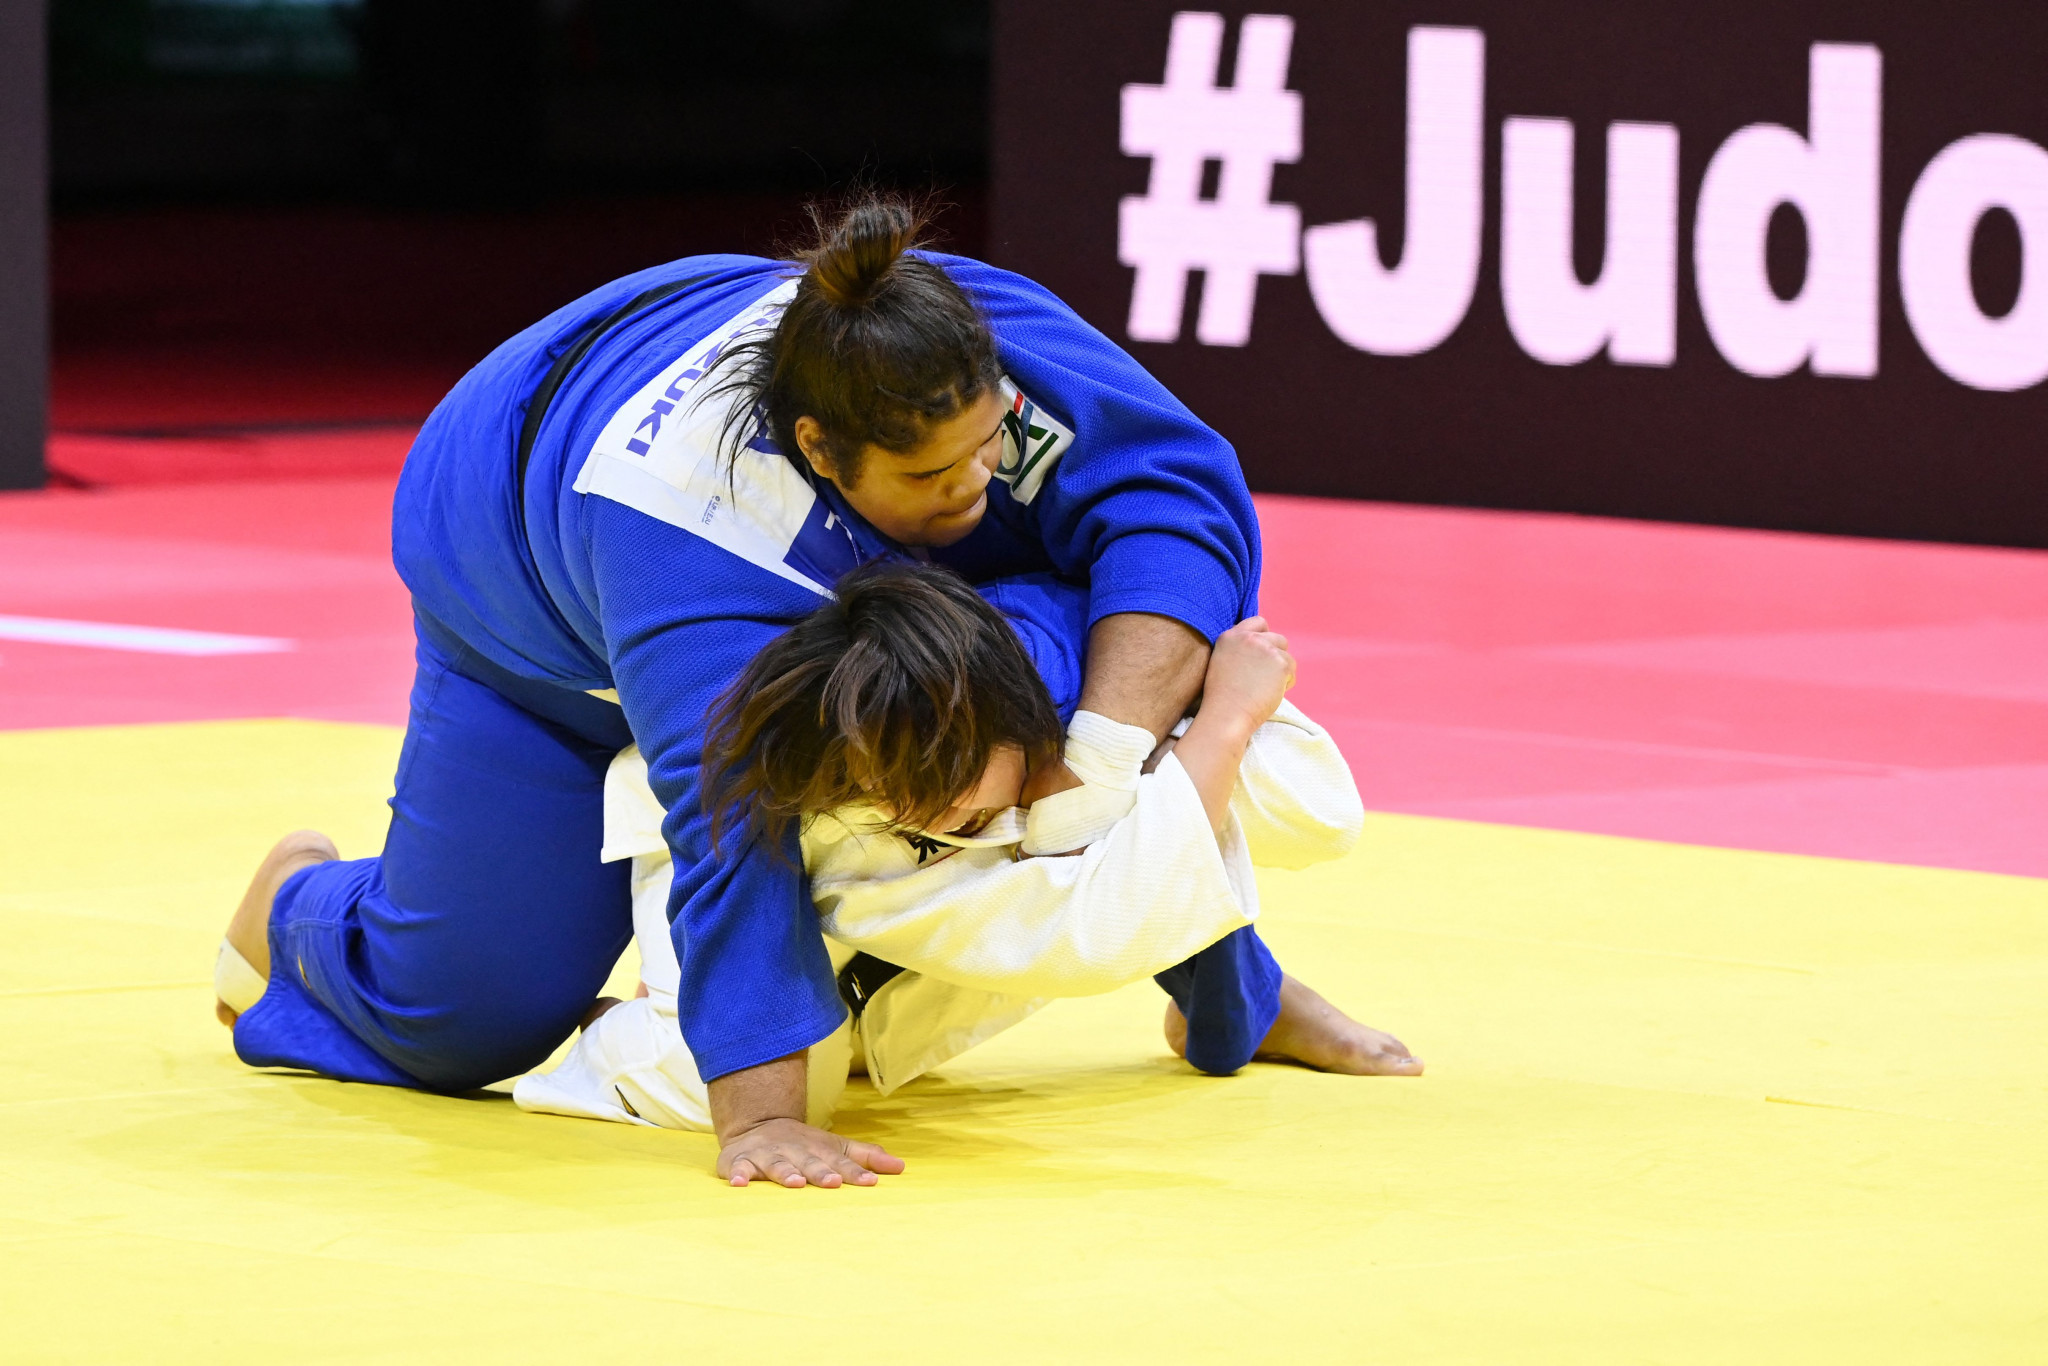 Judo, like all sports, faces a challenge to bounce back from the coronavirus pandemic  ©Getty Images